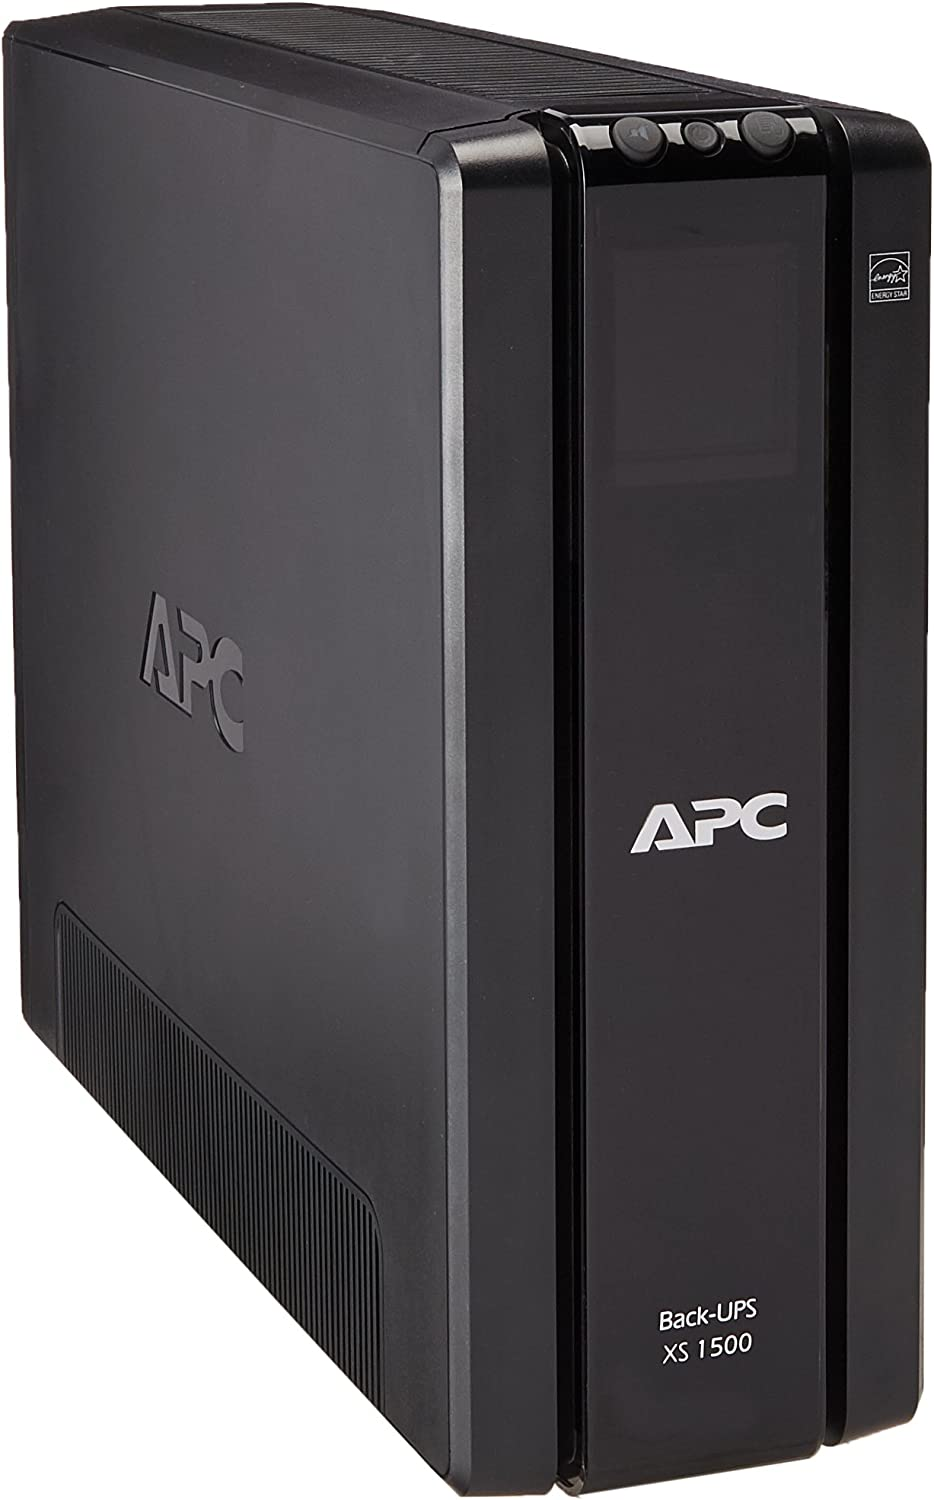 POWER SAVING BACK-UPS XS 1500 (Discontinued by Manufacturer)